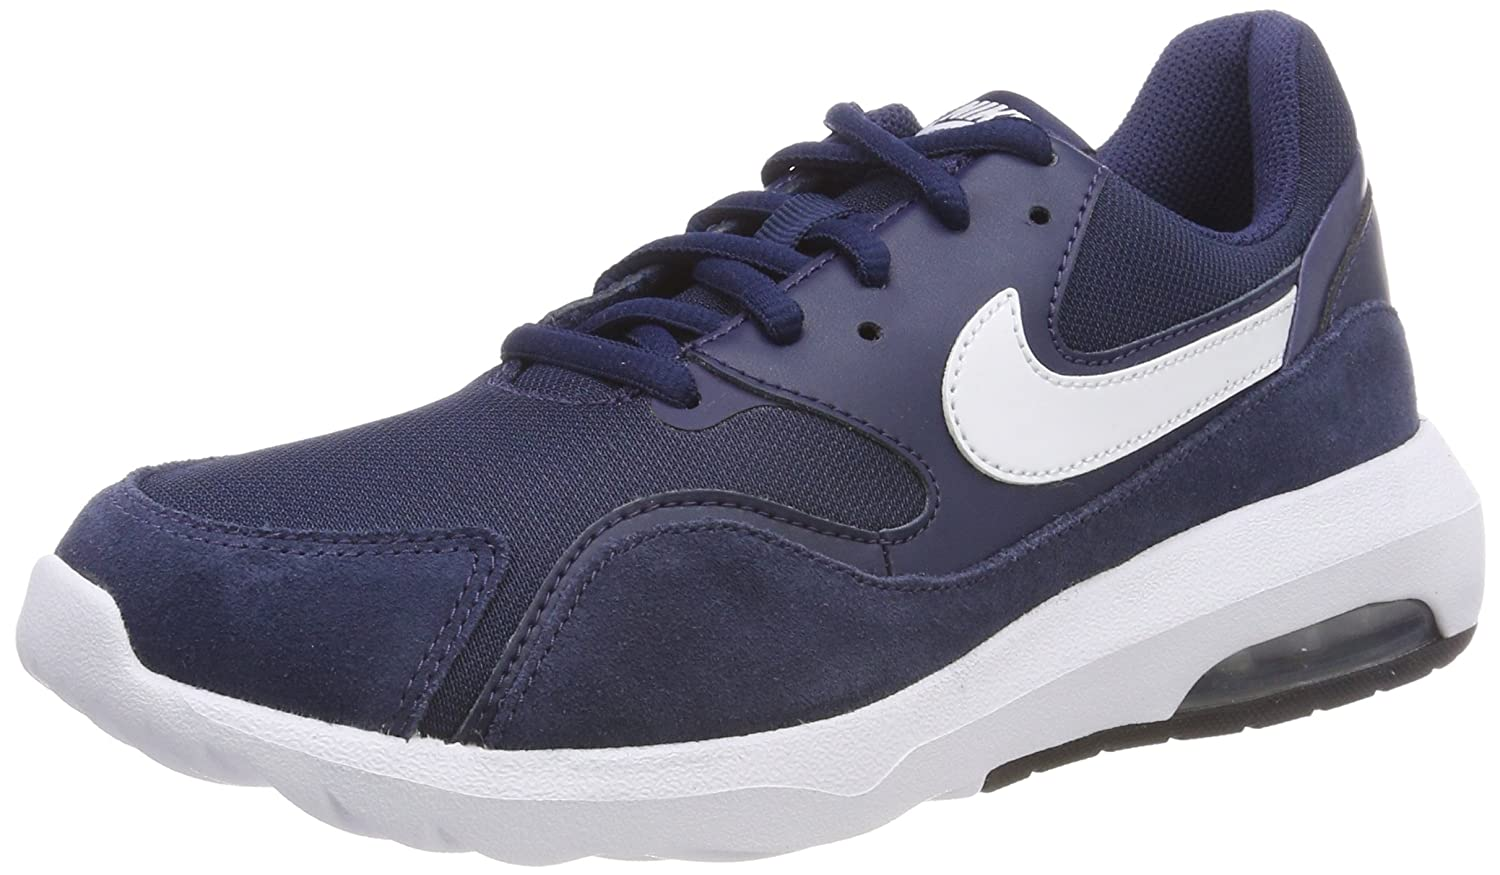 Nike Air MAX Nostalgic, Zapatillas de Gimnasia para Hombre 42.5 EU|Azul (Midnight Navy/White/Black)